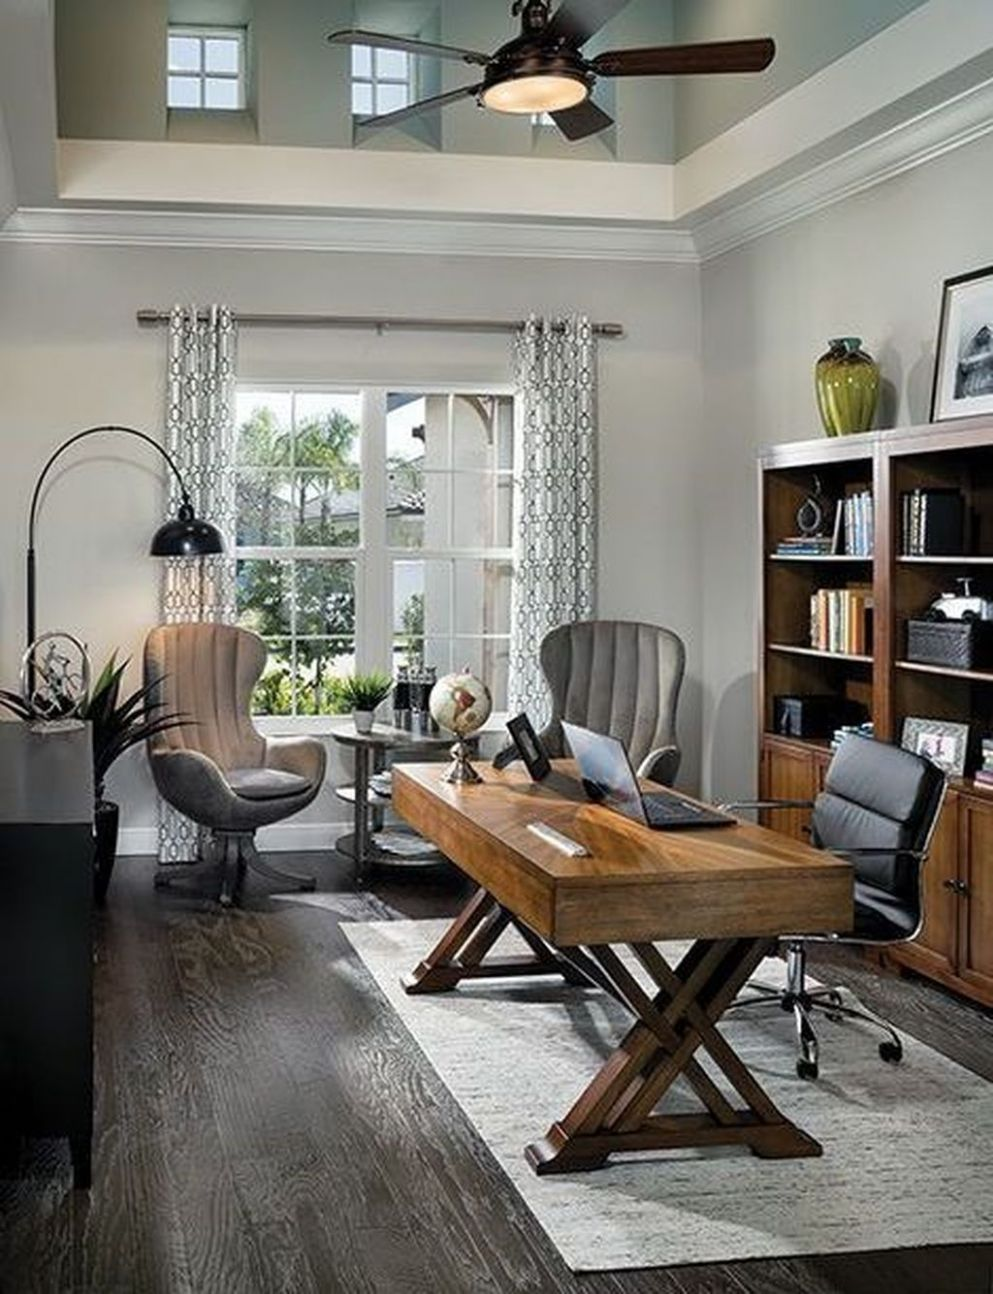 9 Extraordinary Small Home Office Design Ideas With Traditional ..